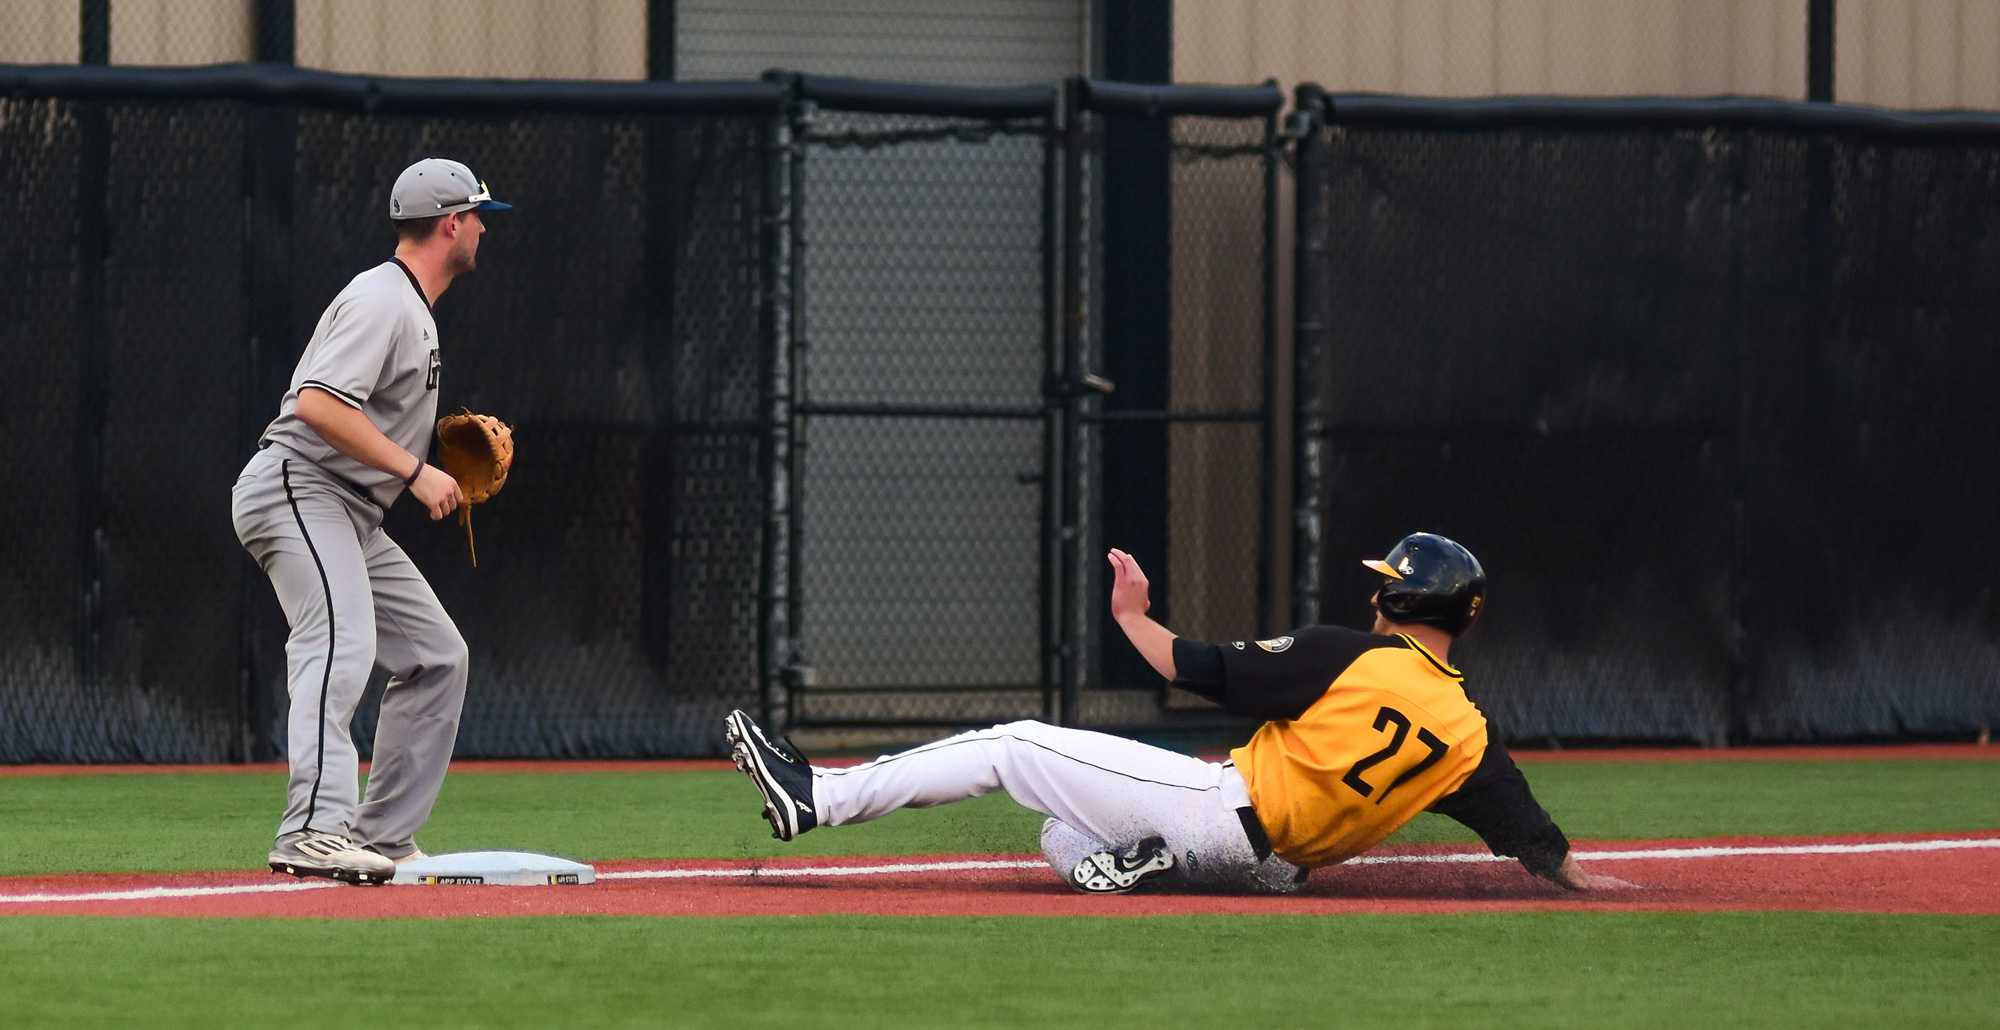 Senior infielder Grayson Atwood slides to third base. Photo by Dallas Linger, Photo Editor.